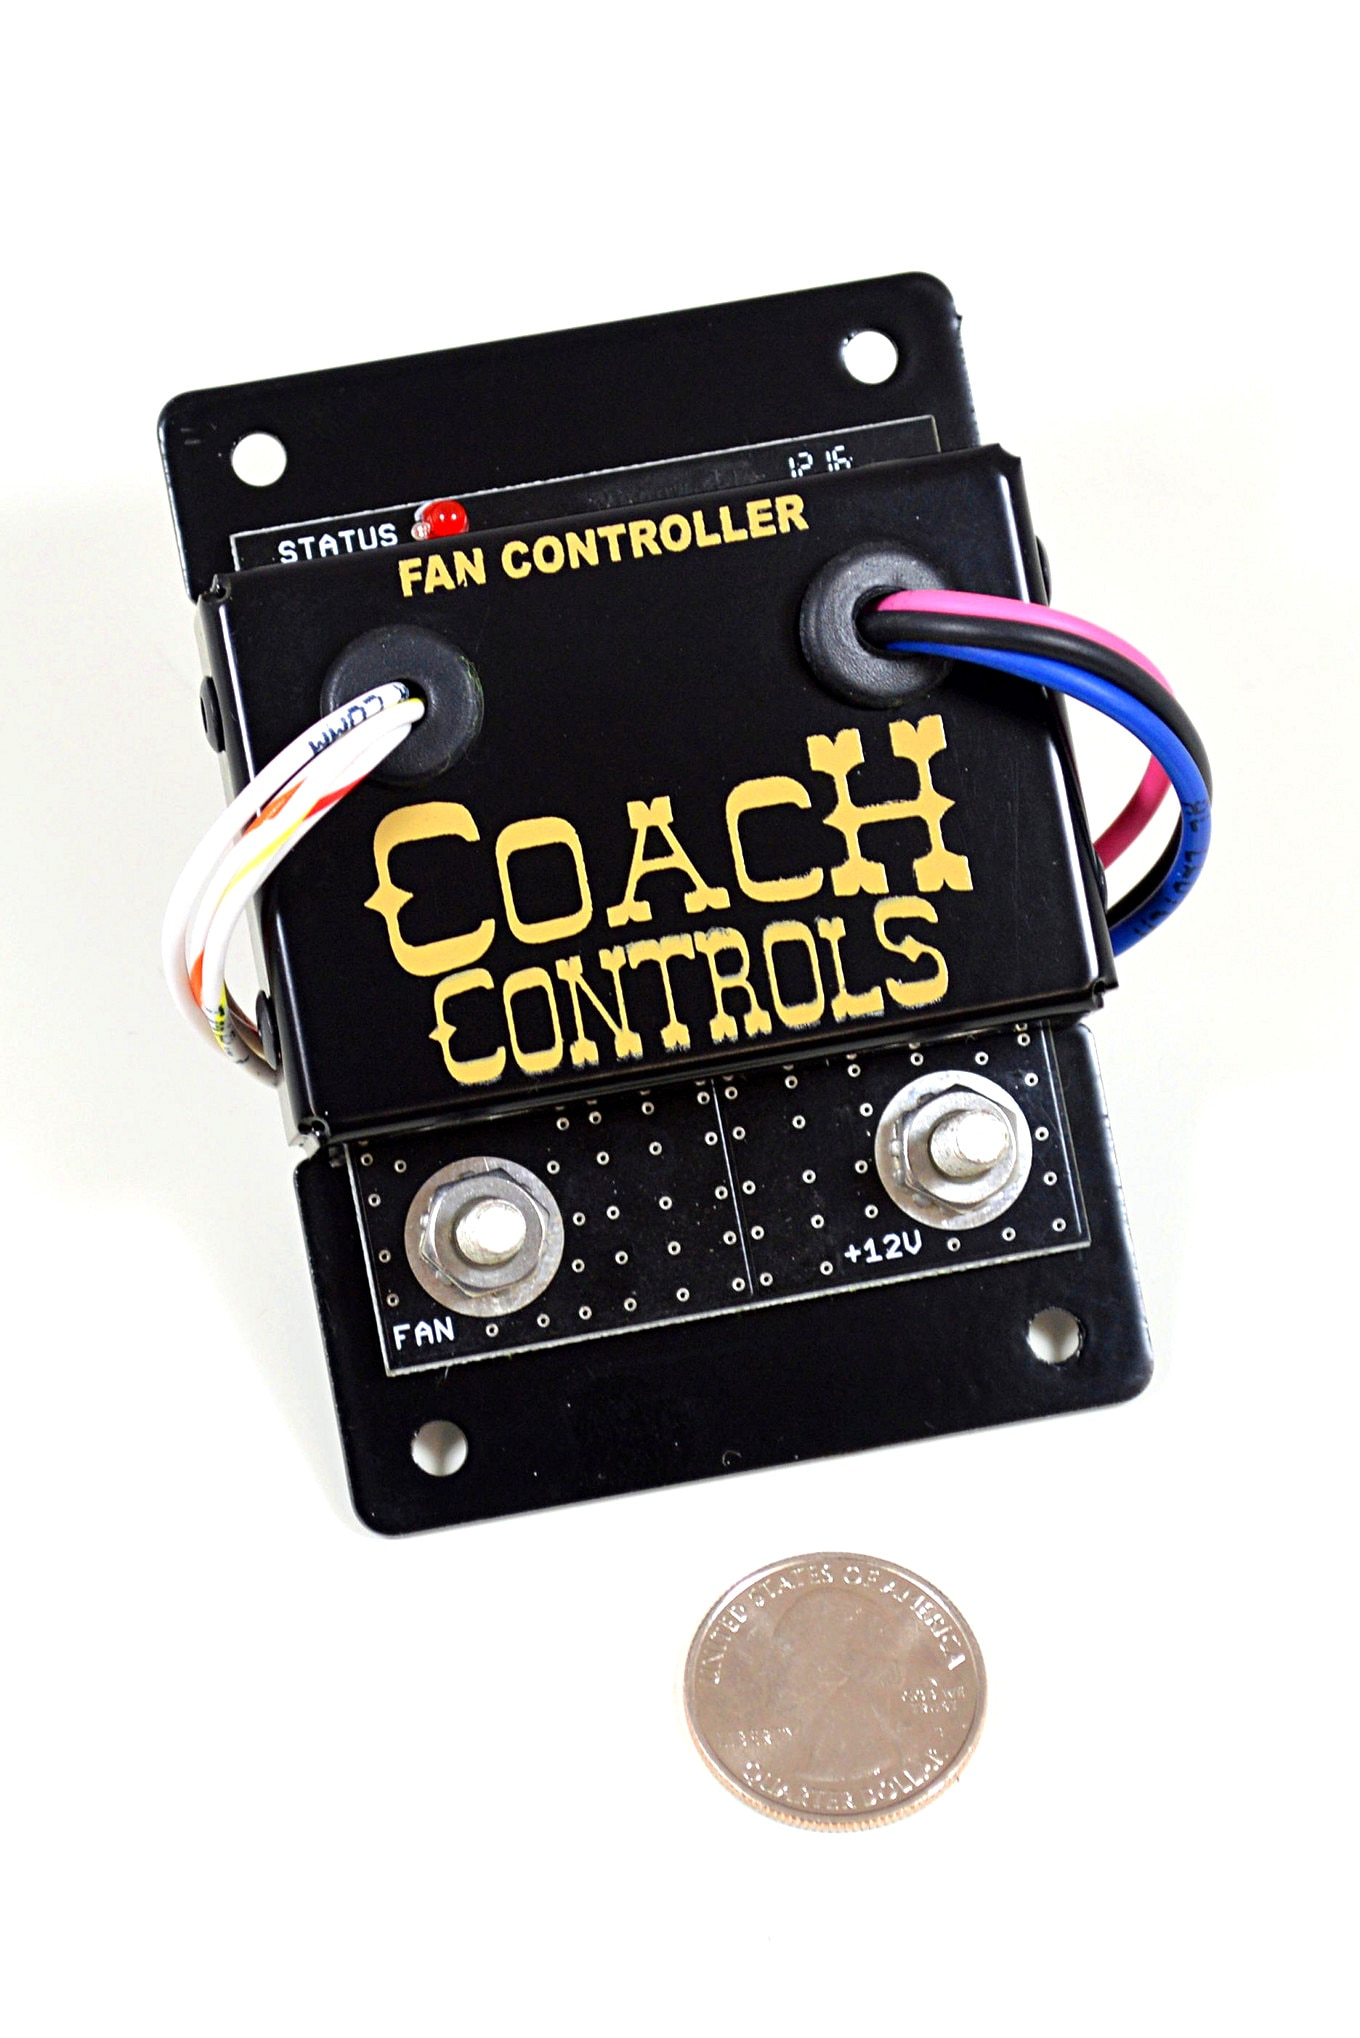 hight resolution of all coach control wiring kits include 100 amp surge resistant fuses to protect